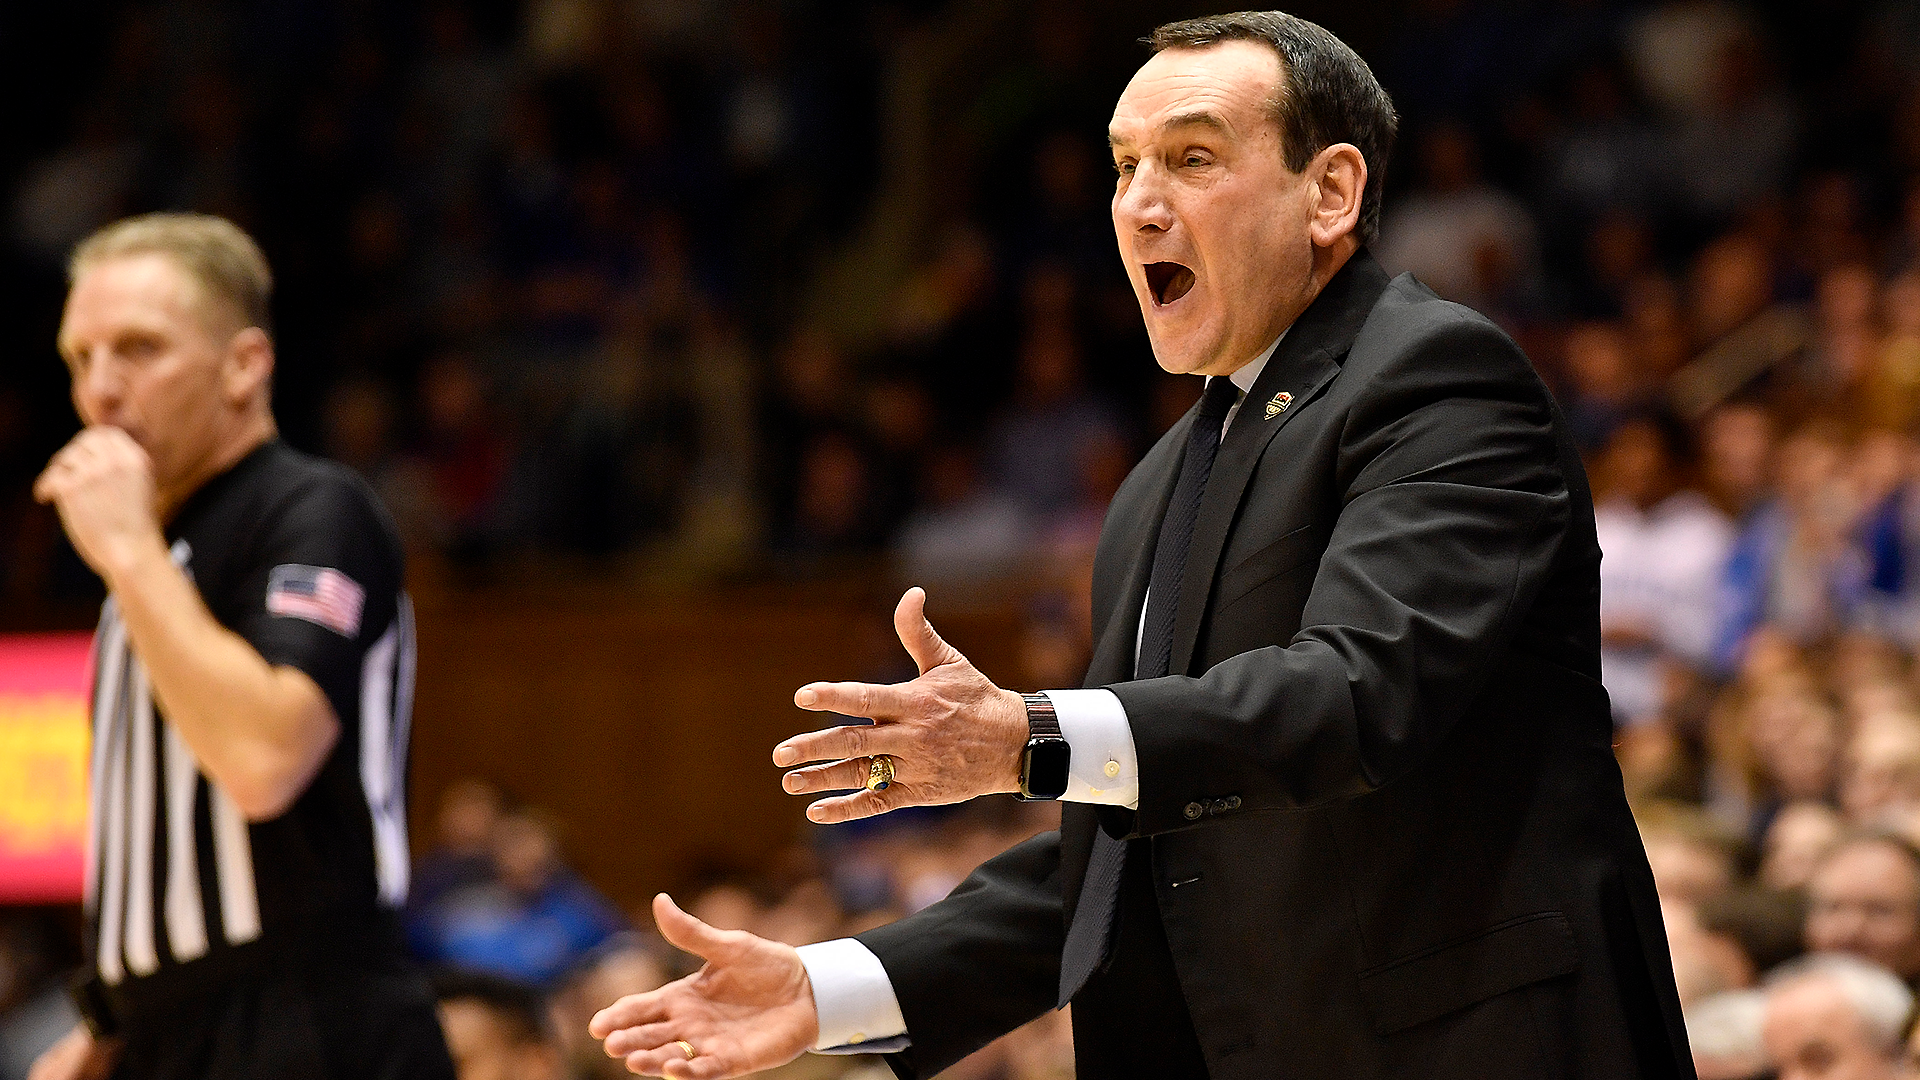 Mike Krzyzewski apologizes to Duke student-reporter whose question drew the coach's ire